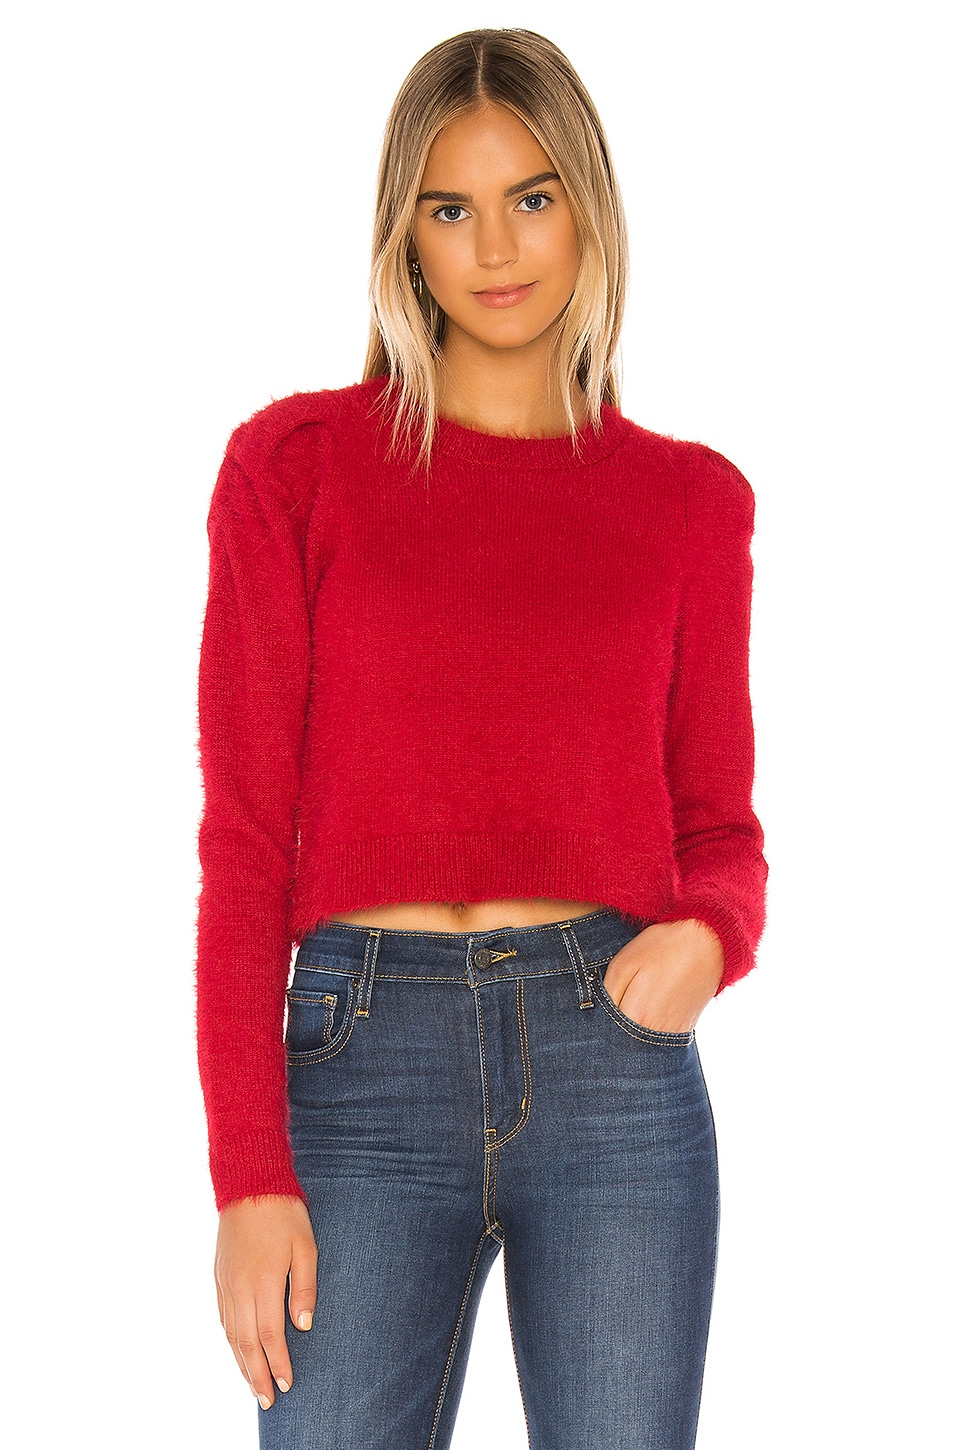 Lovers + Friends Mariah Sweater in Plum